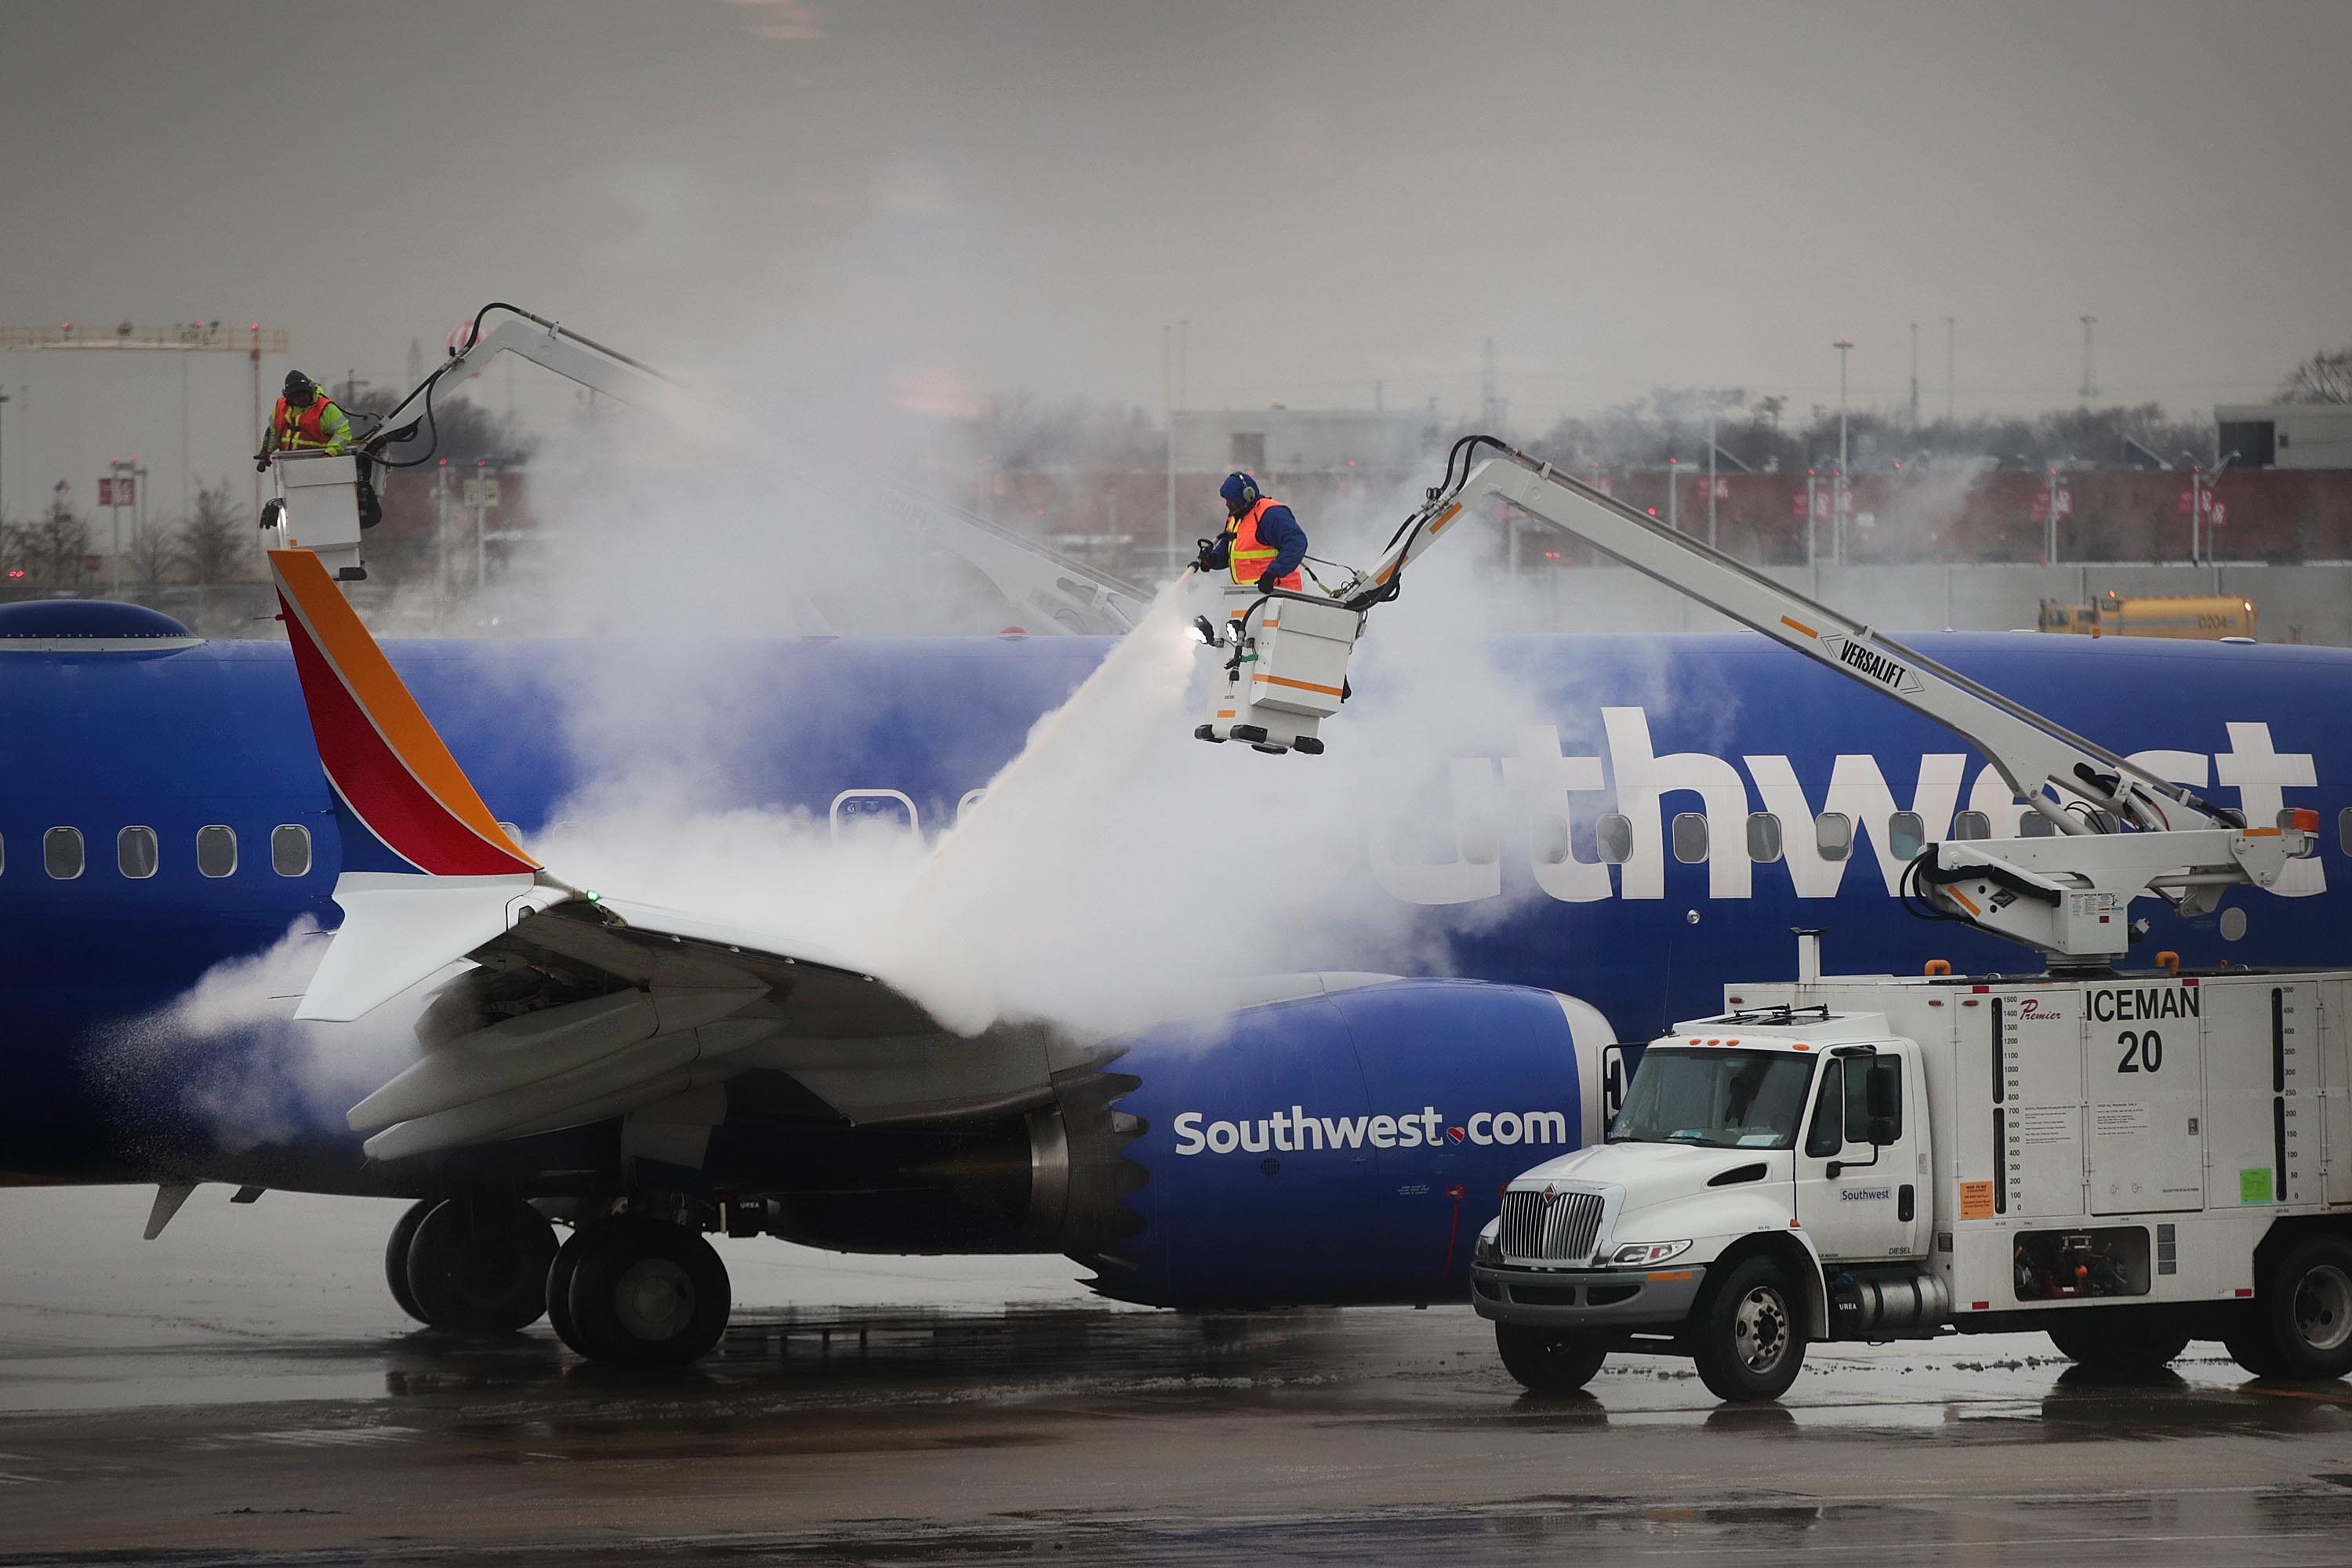 Workers deice a Southwest Airline's aircraft at Midway Airport on January 22, 2019 in Chicago, Illinois.